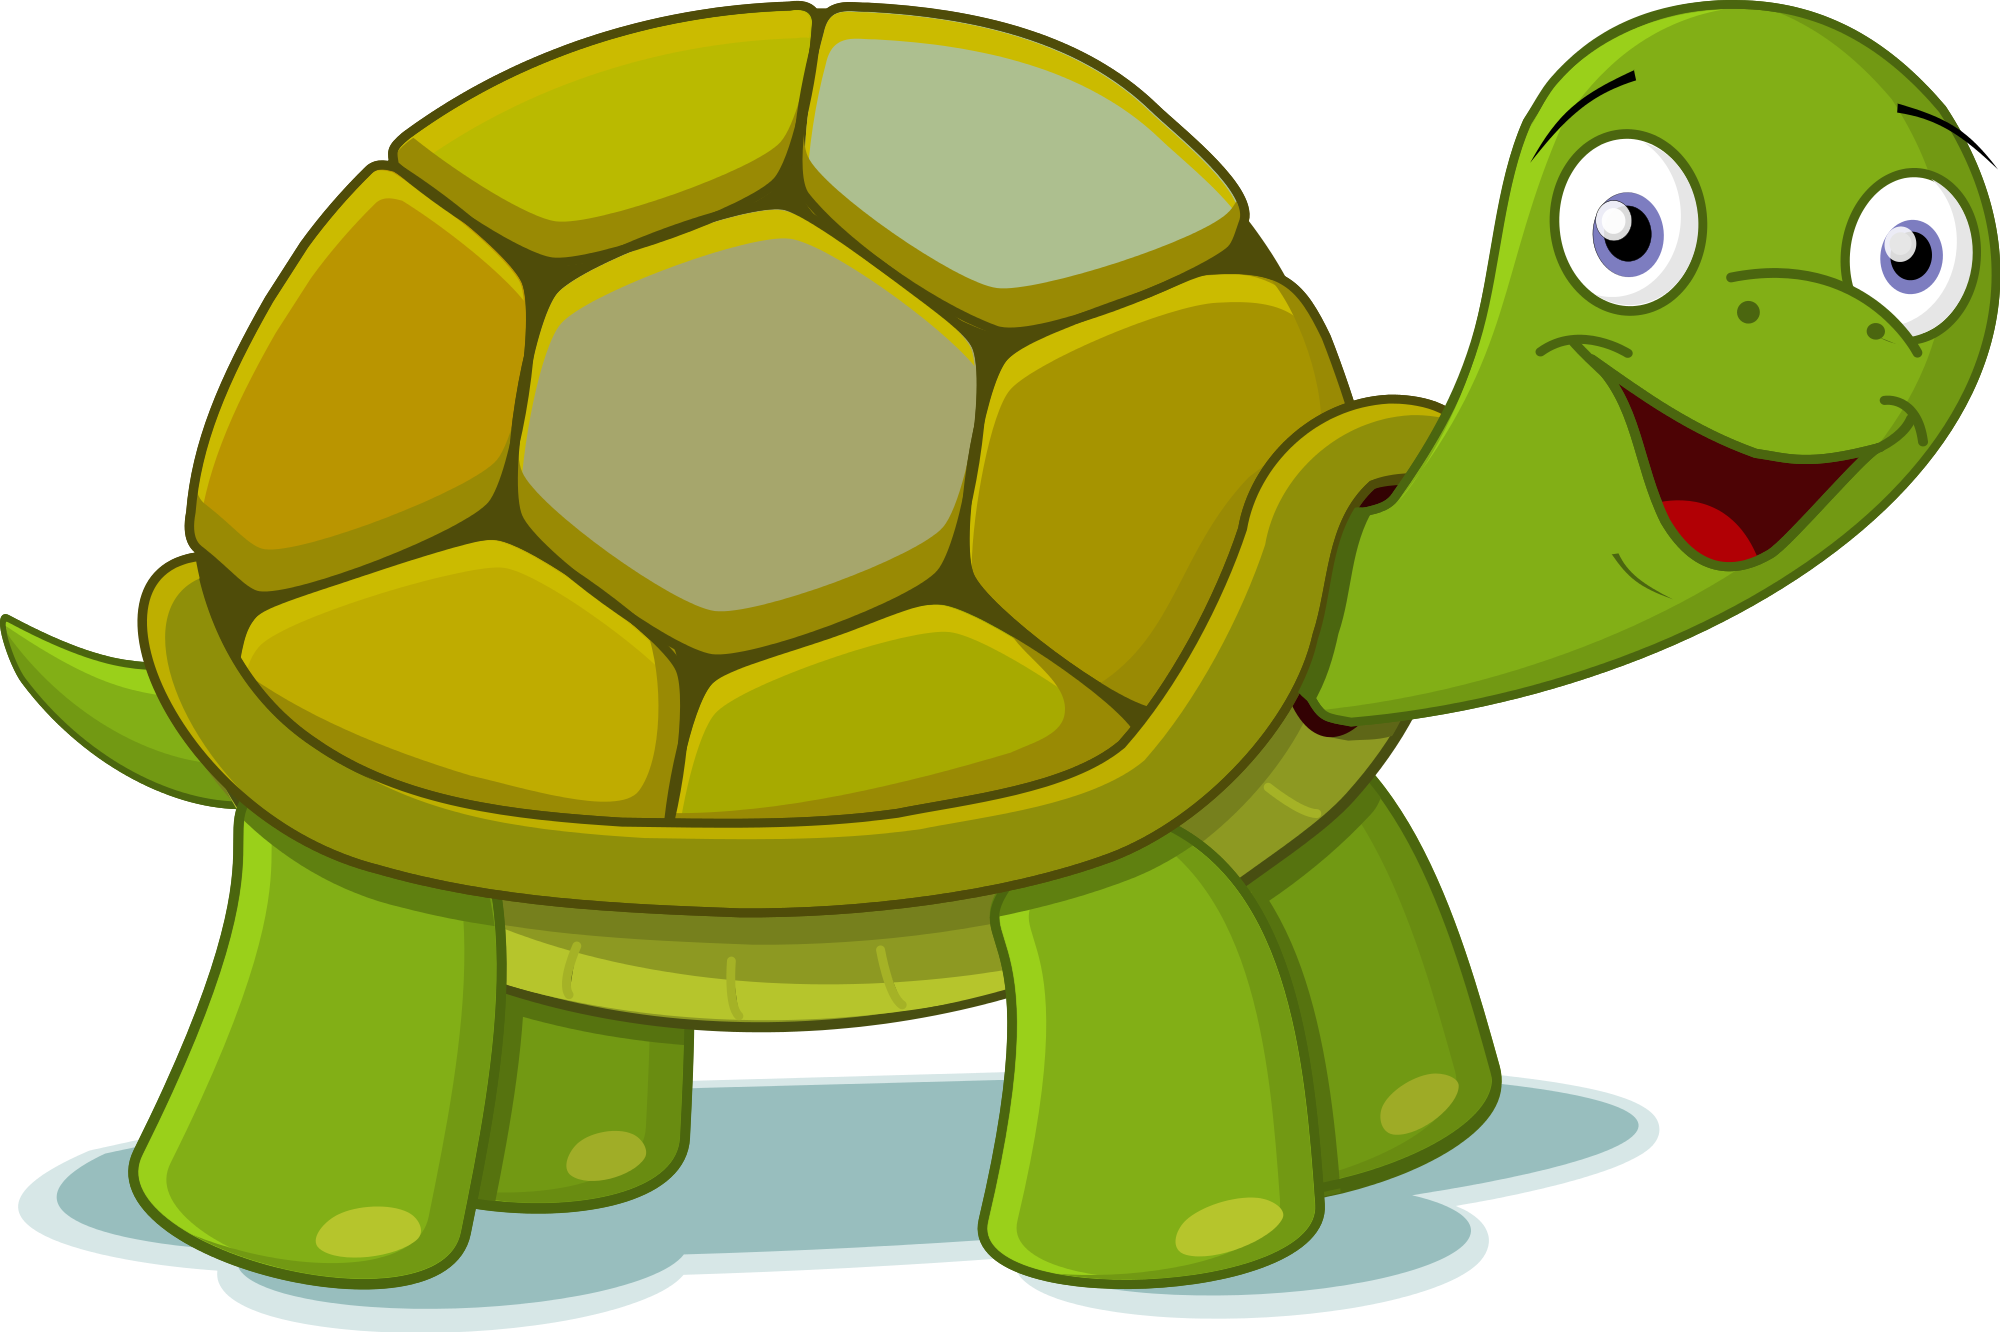 Clipart turtle. Panda free images turtleclipart